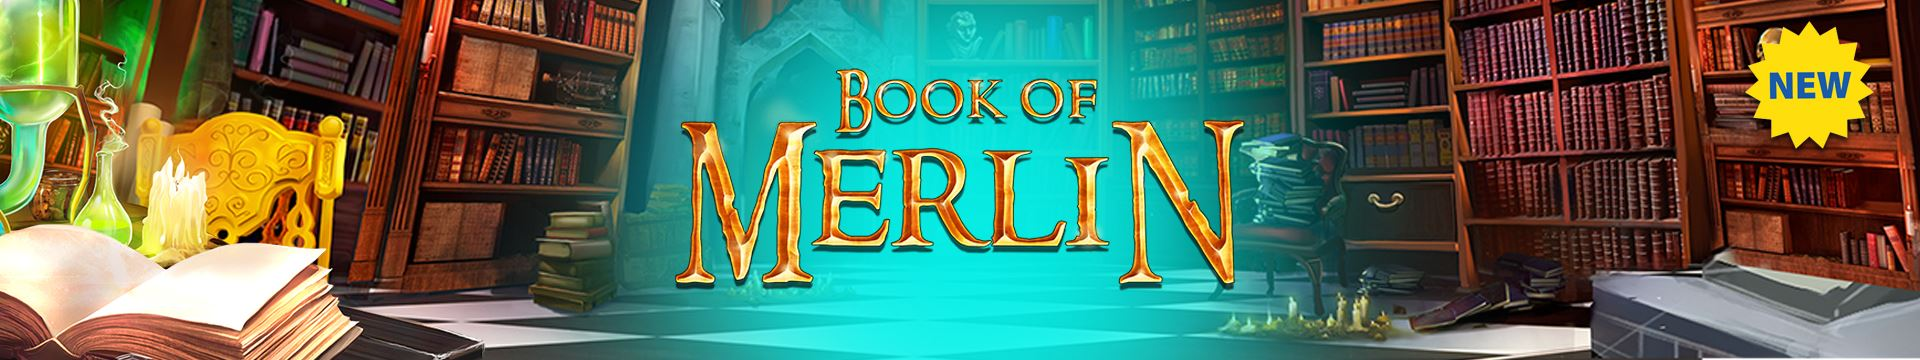 Book_of_Merlin